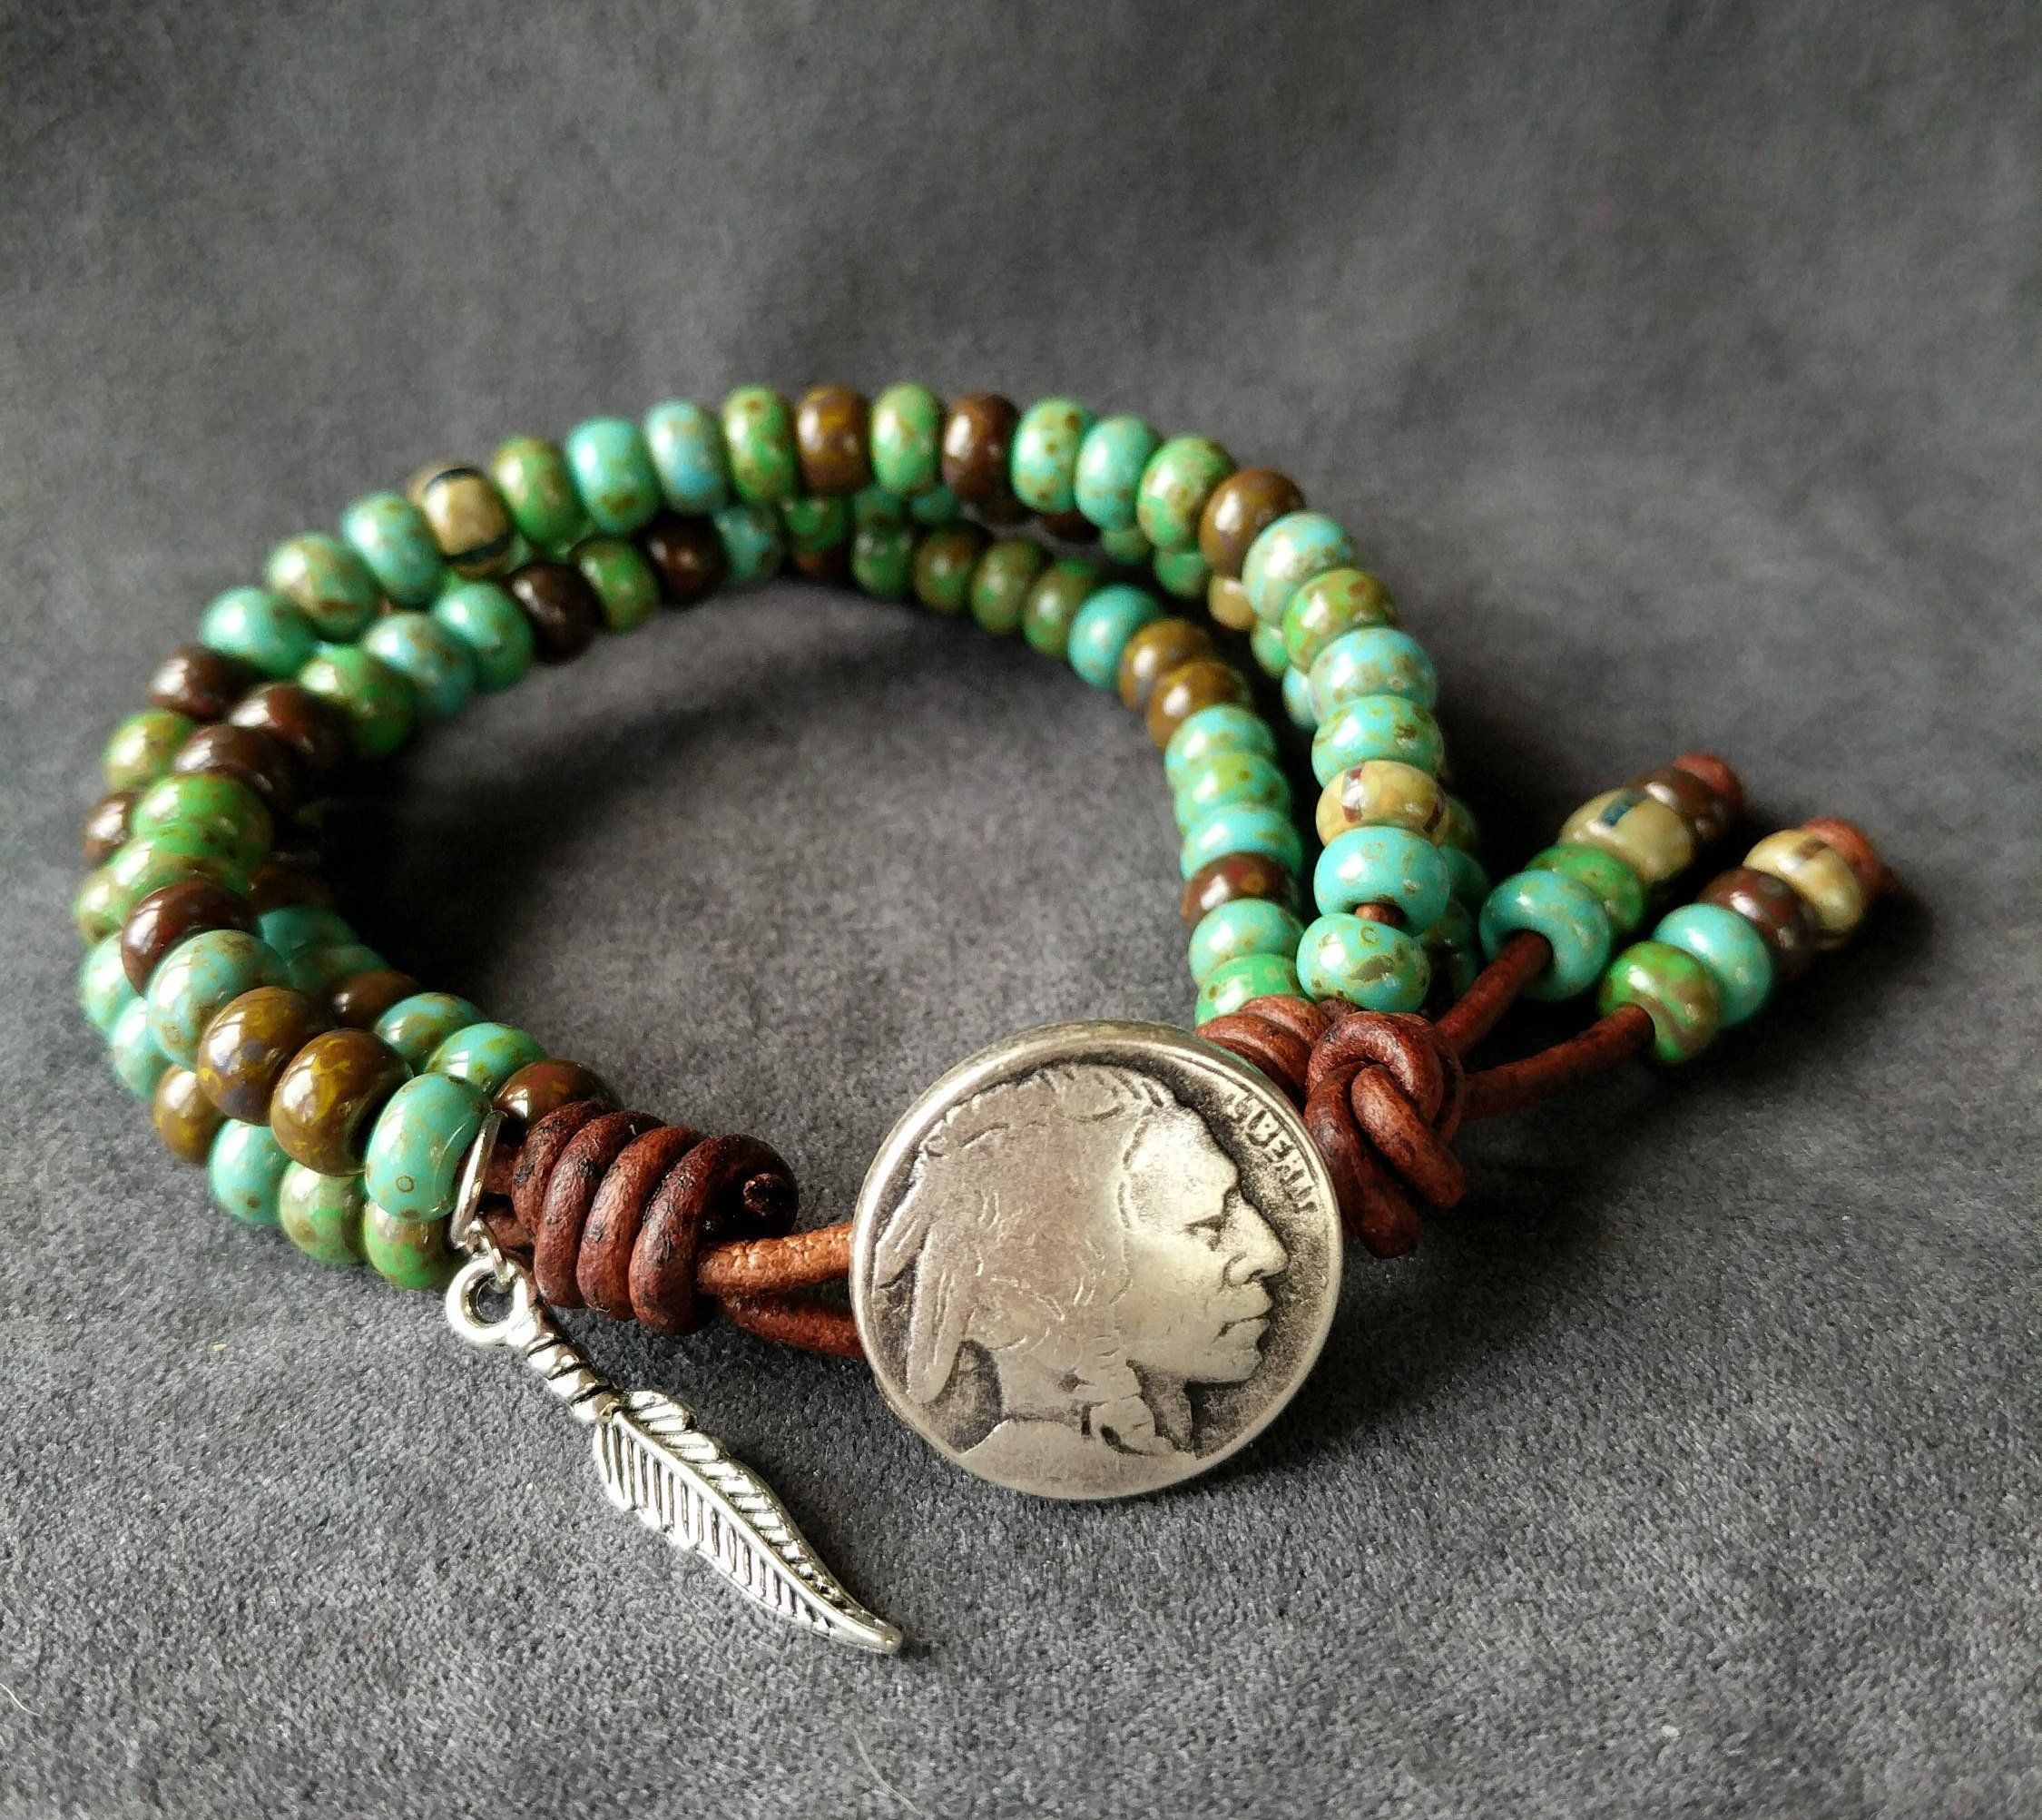 bracelet or anklet and earrings Custom native inspired jewelry set with hair wrap necklace